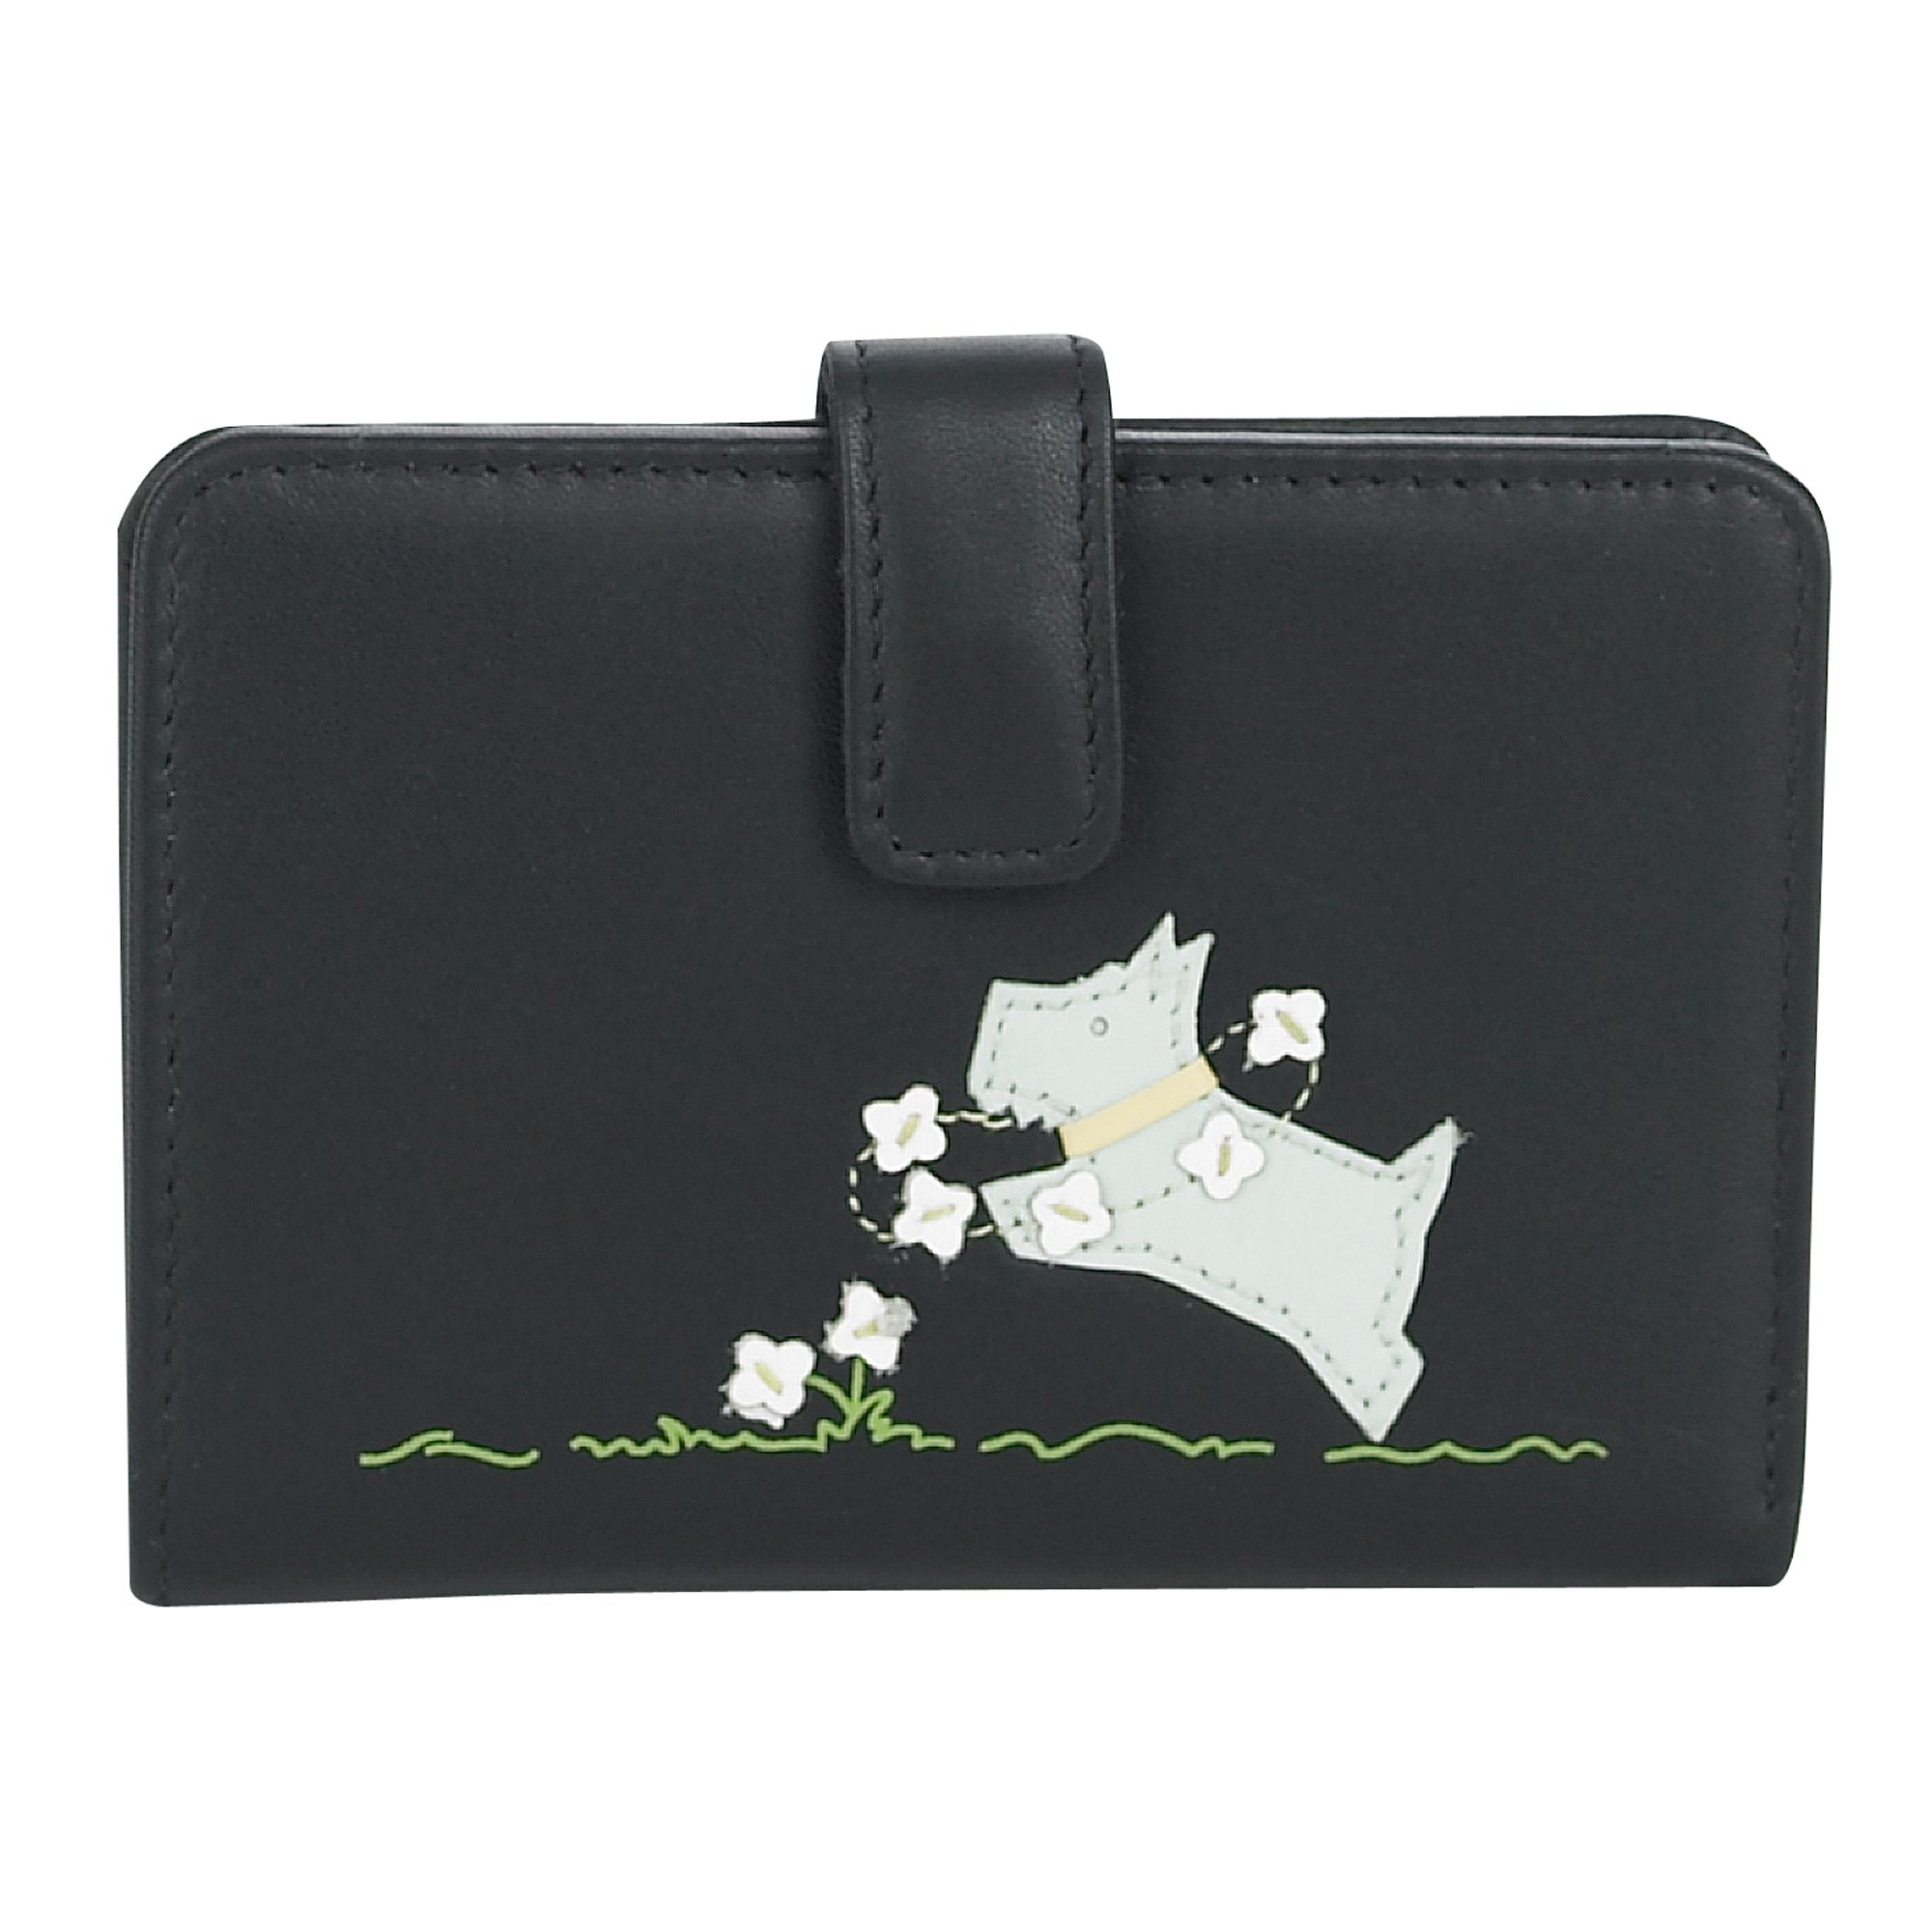 Radley Daisychain small leather credit card holder product image